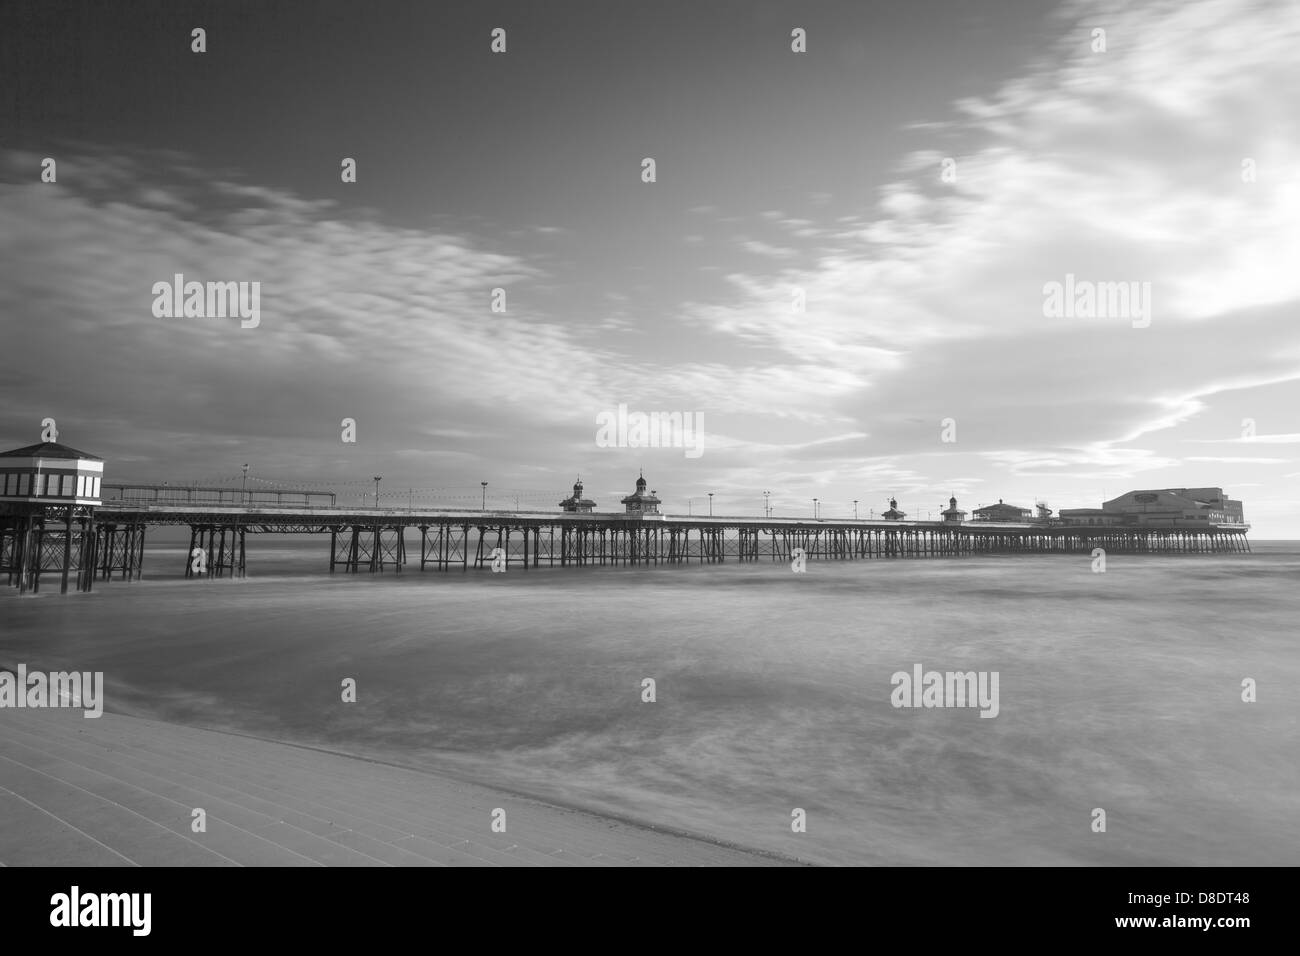 Blackpool North Pier, Lancashire, England, UK - Stock Image